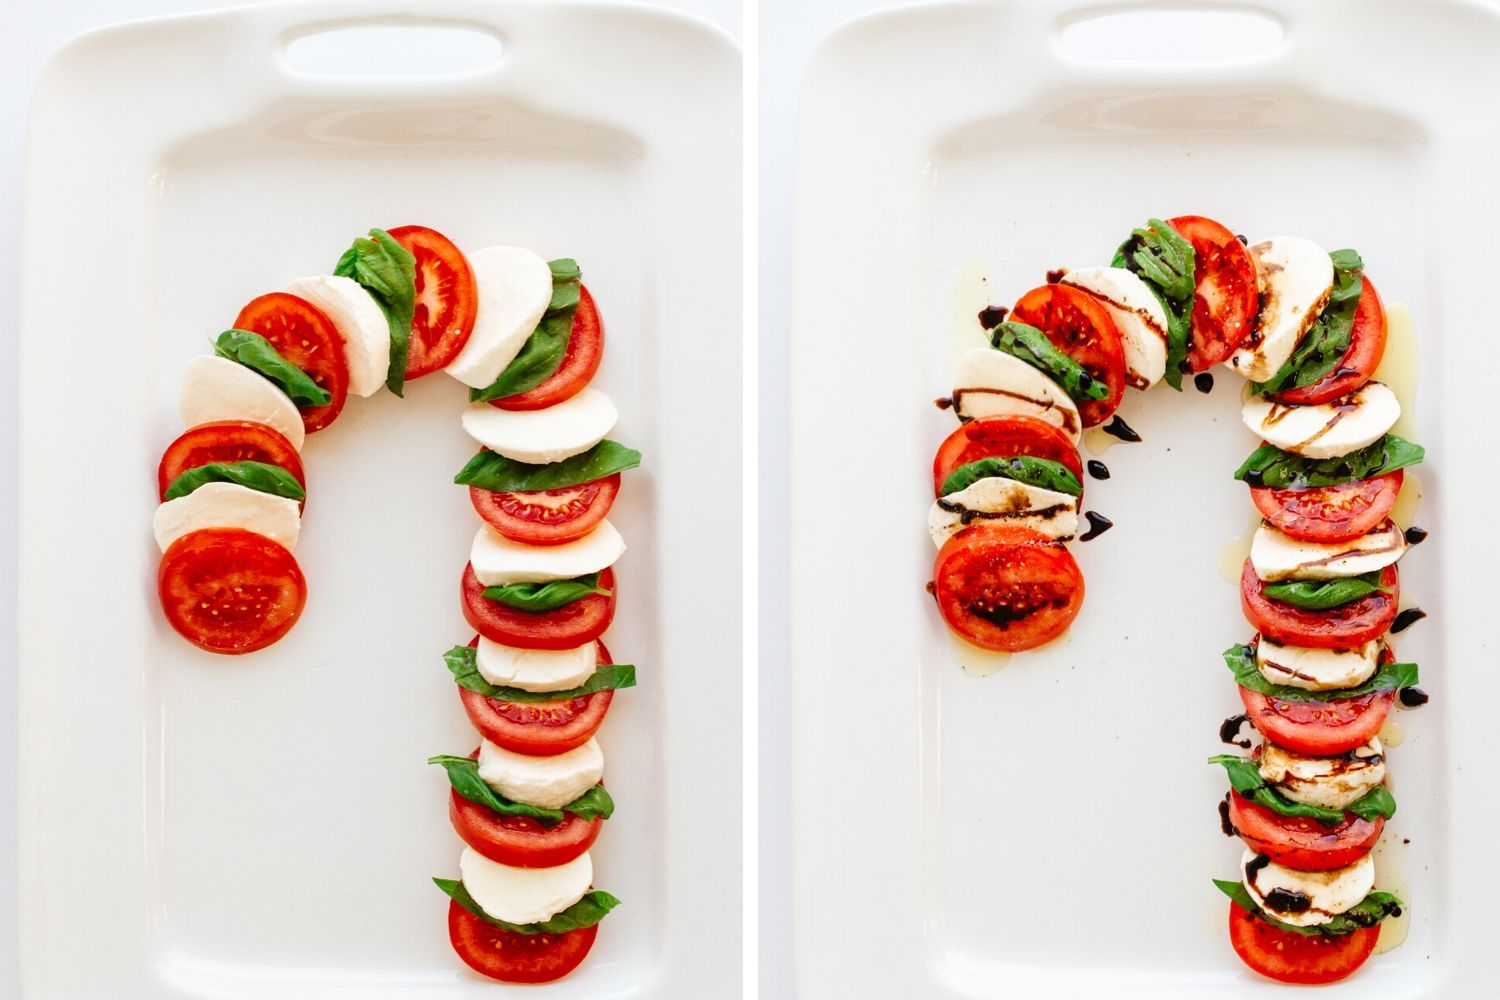 Two side by side pictures of caprese salad arranged in the shape of a candy cane on white platters.  Left picture has no dressing and right picture is dressed.